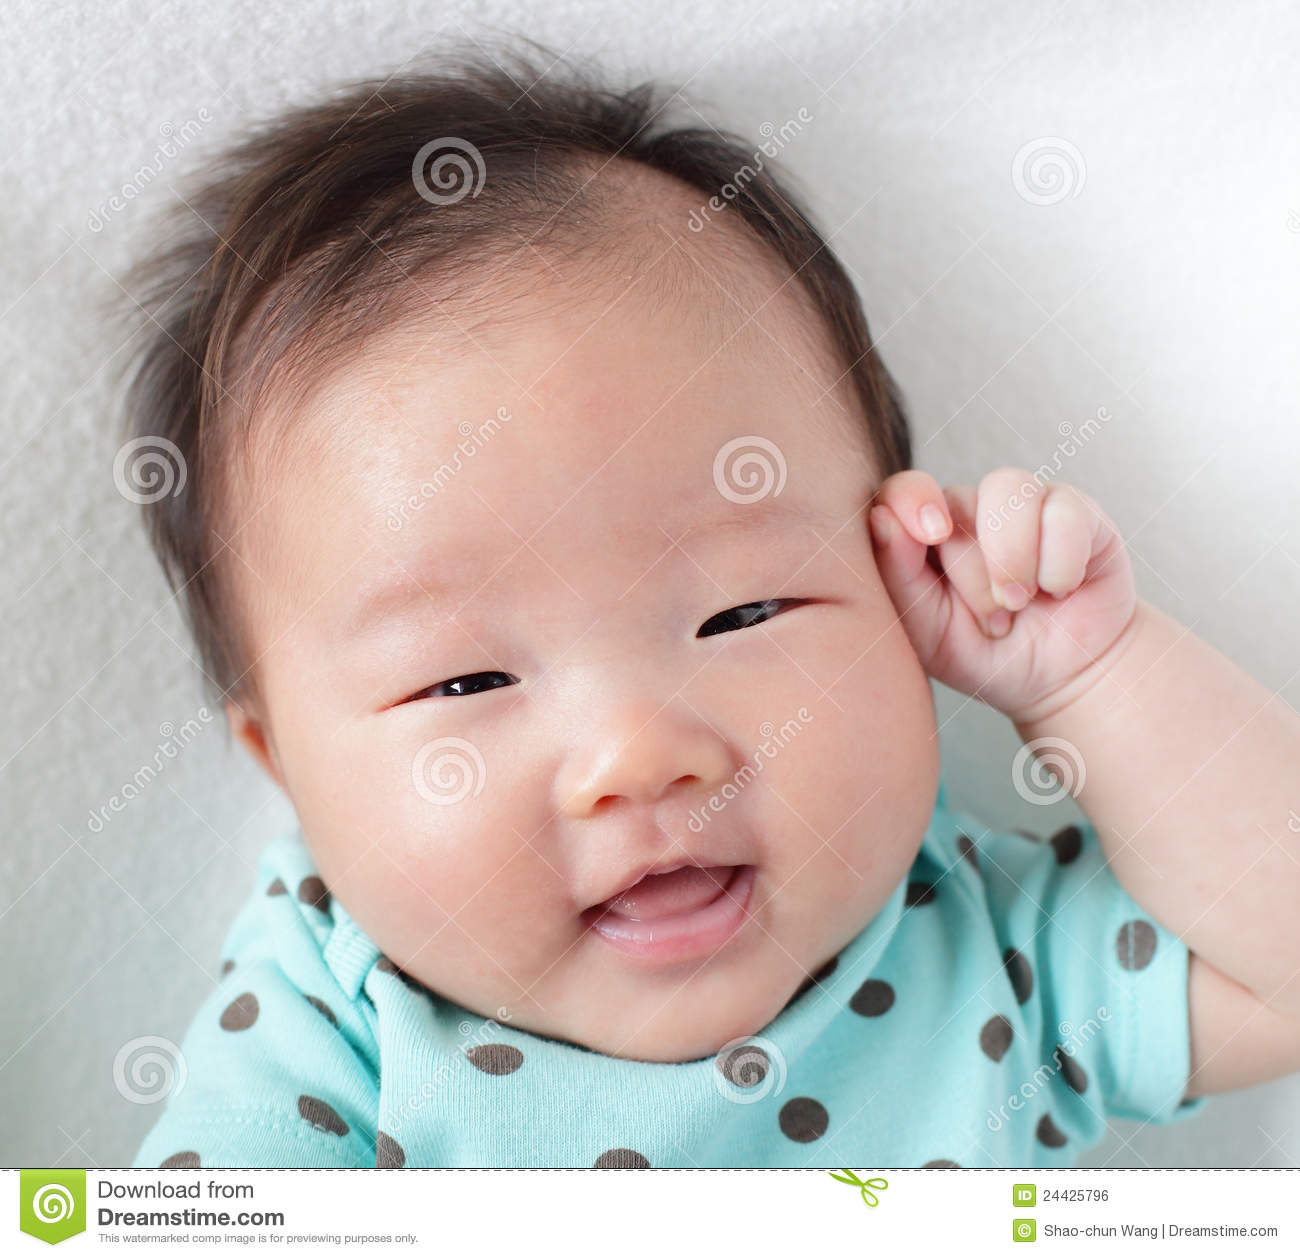 e113114bb Smile Face Close Up Of A Cute Baby Stock Photo - Image of infant ...